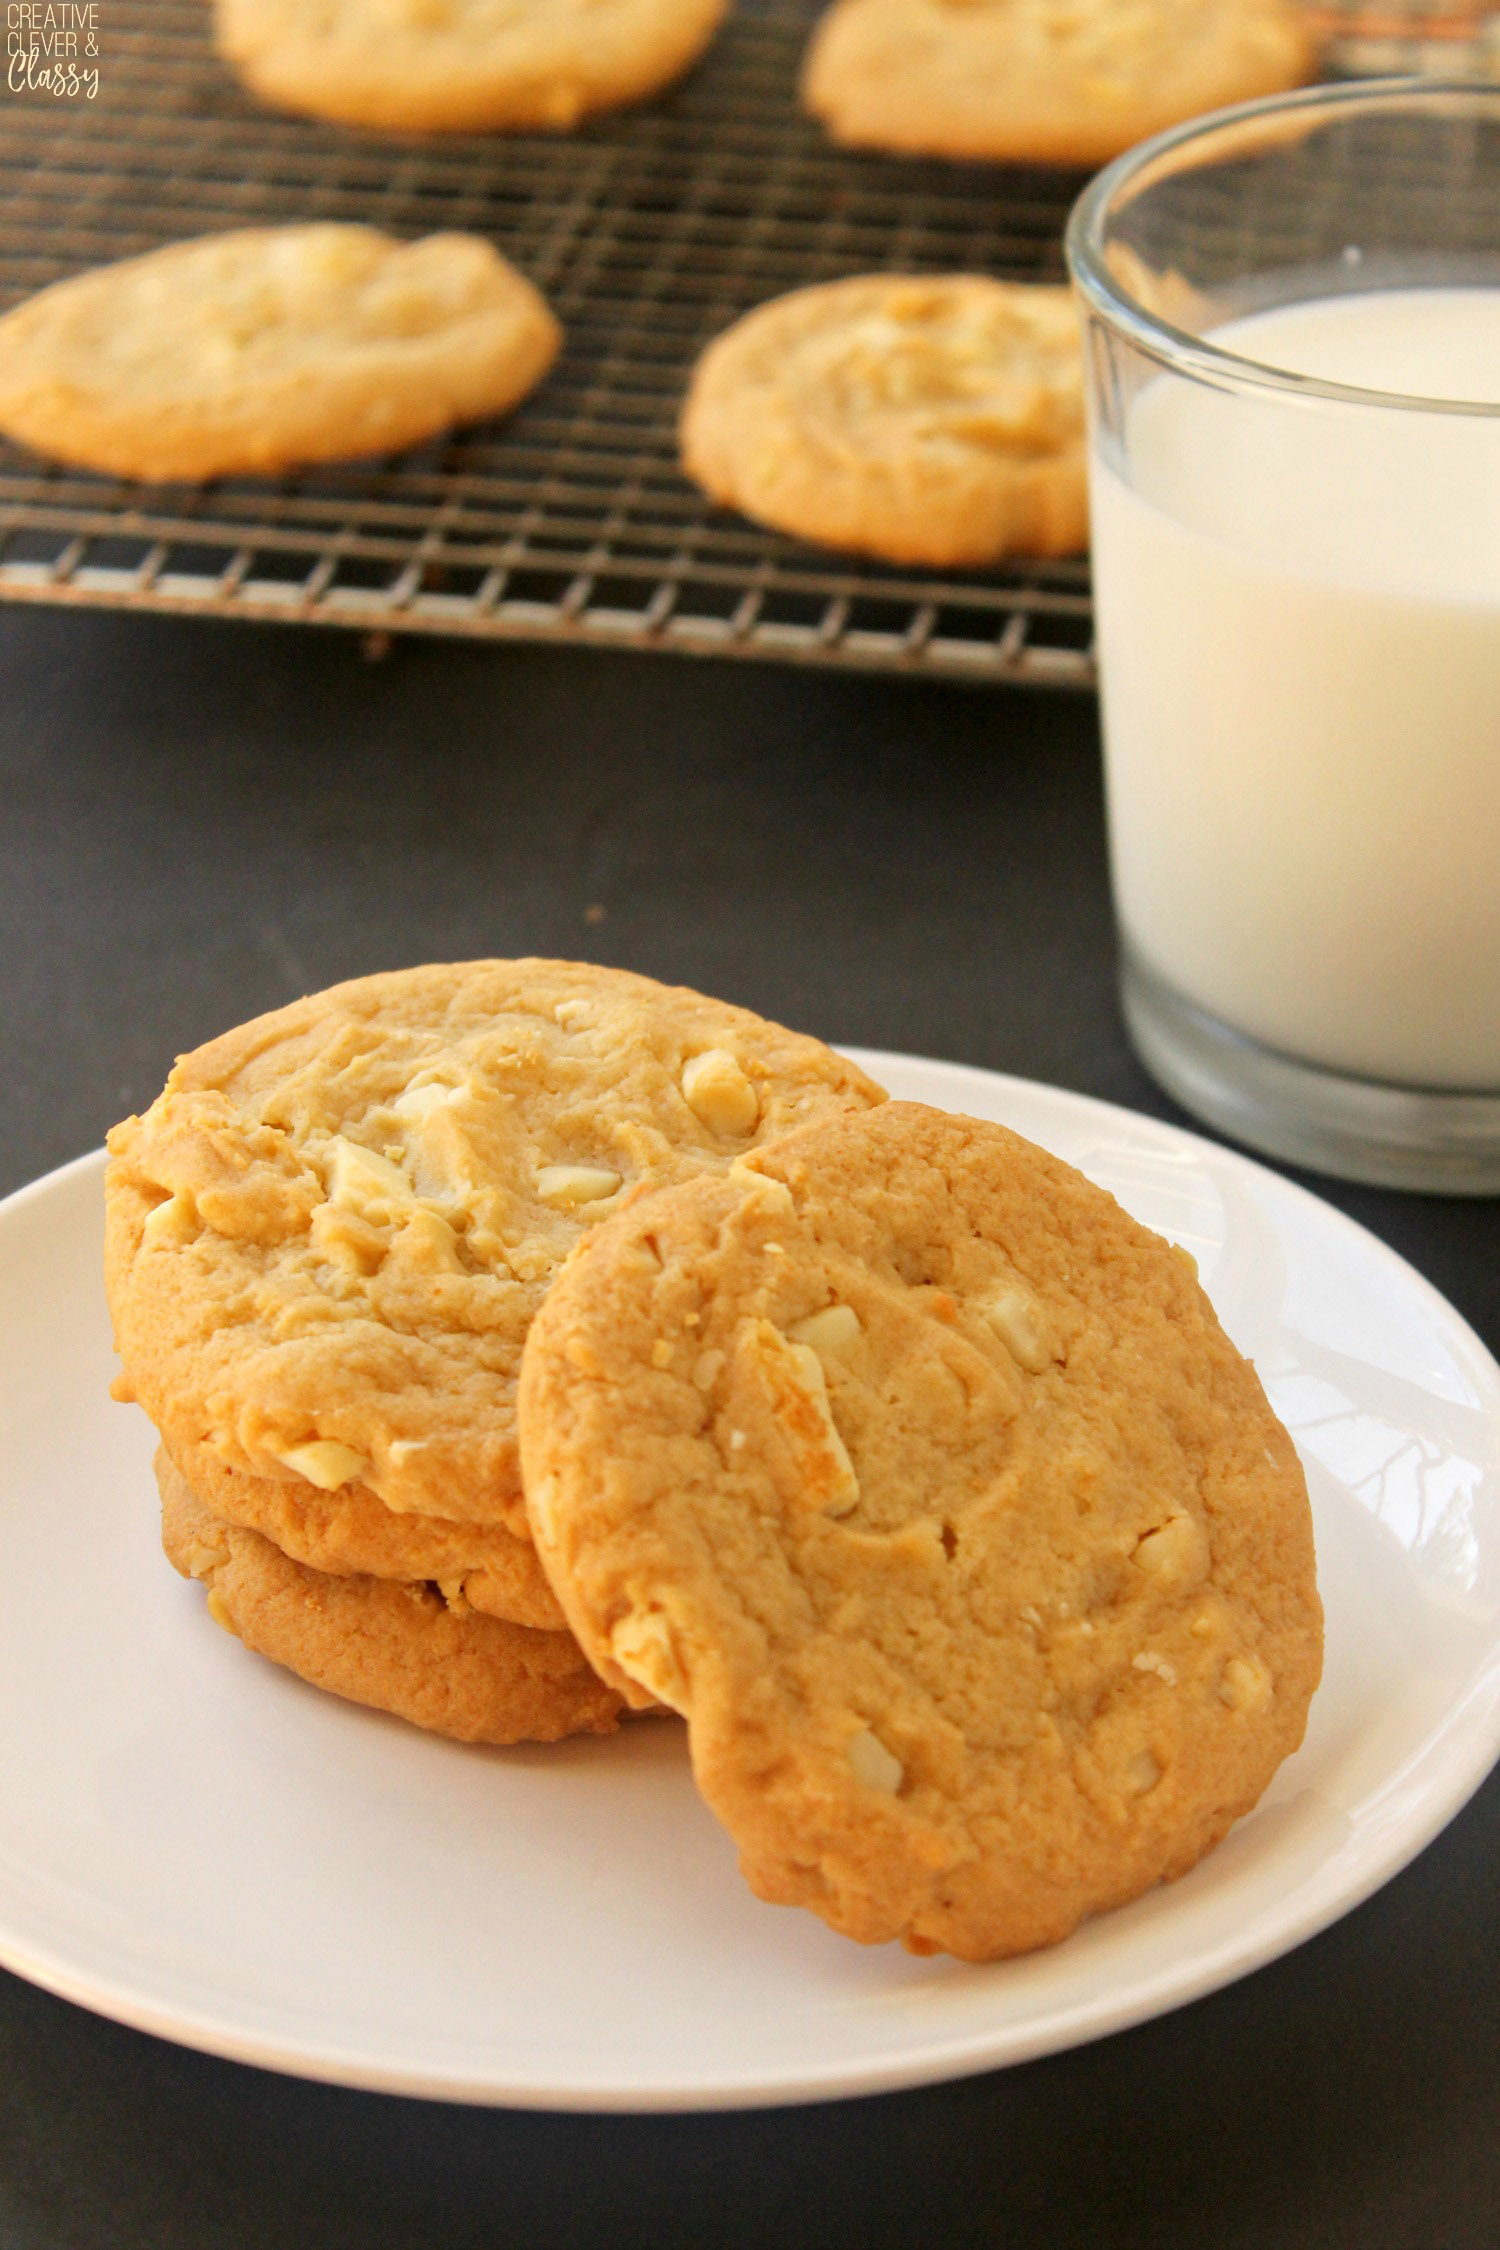 My favorite part of Christmas is making Christmas cookies! I love eating every Christmas cookie I can get my hands on! Try these delicious, warm white chocolate macadamia nut cookies.